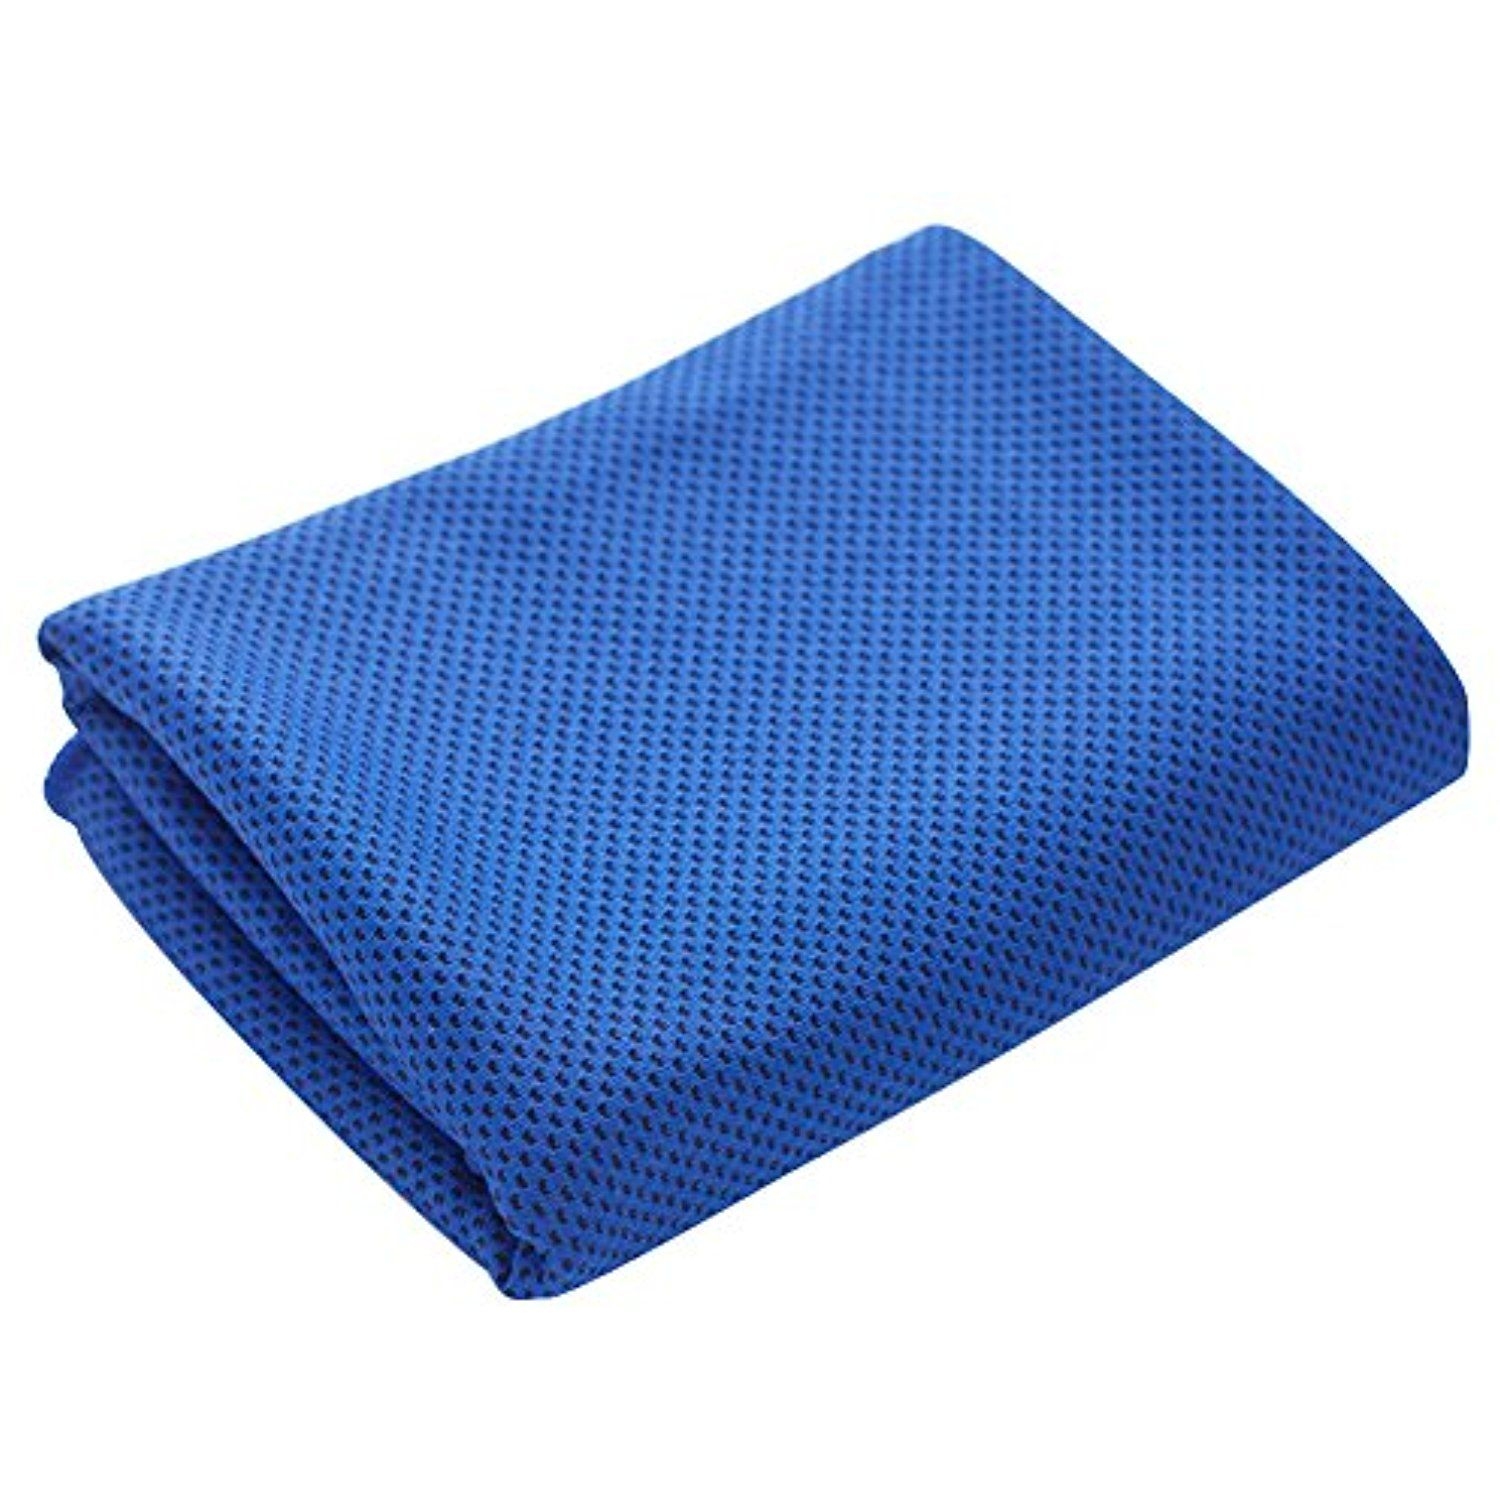 Lisli Microfiber Cooling Towel Yoga Sport Running Exercise Gym